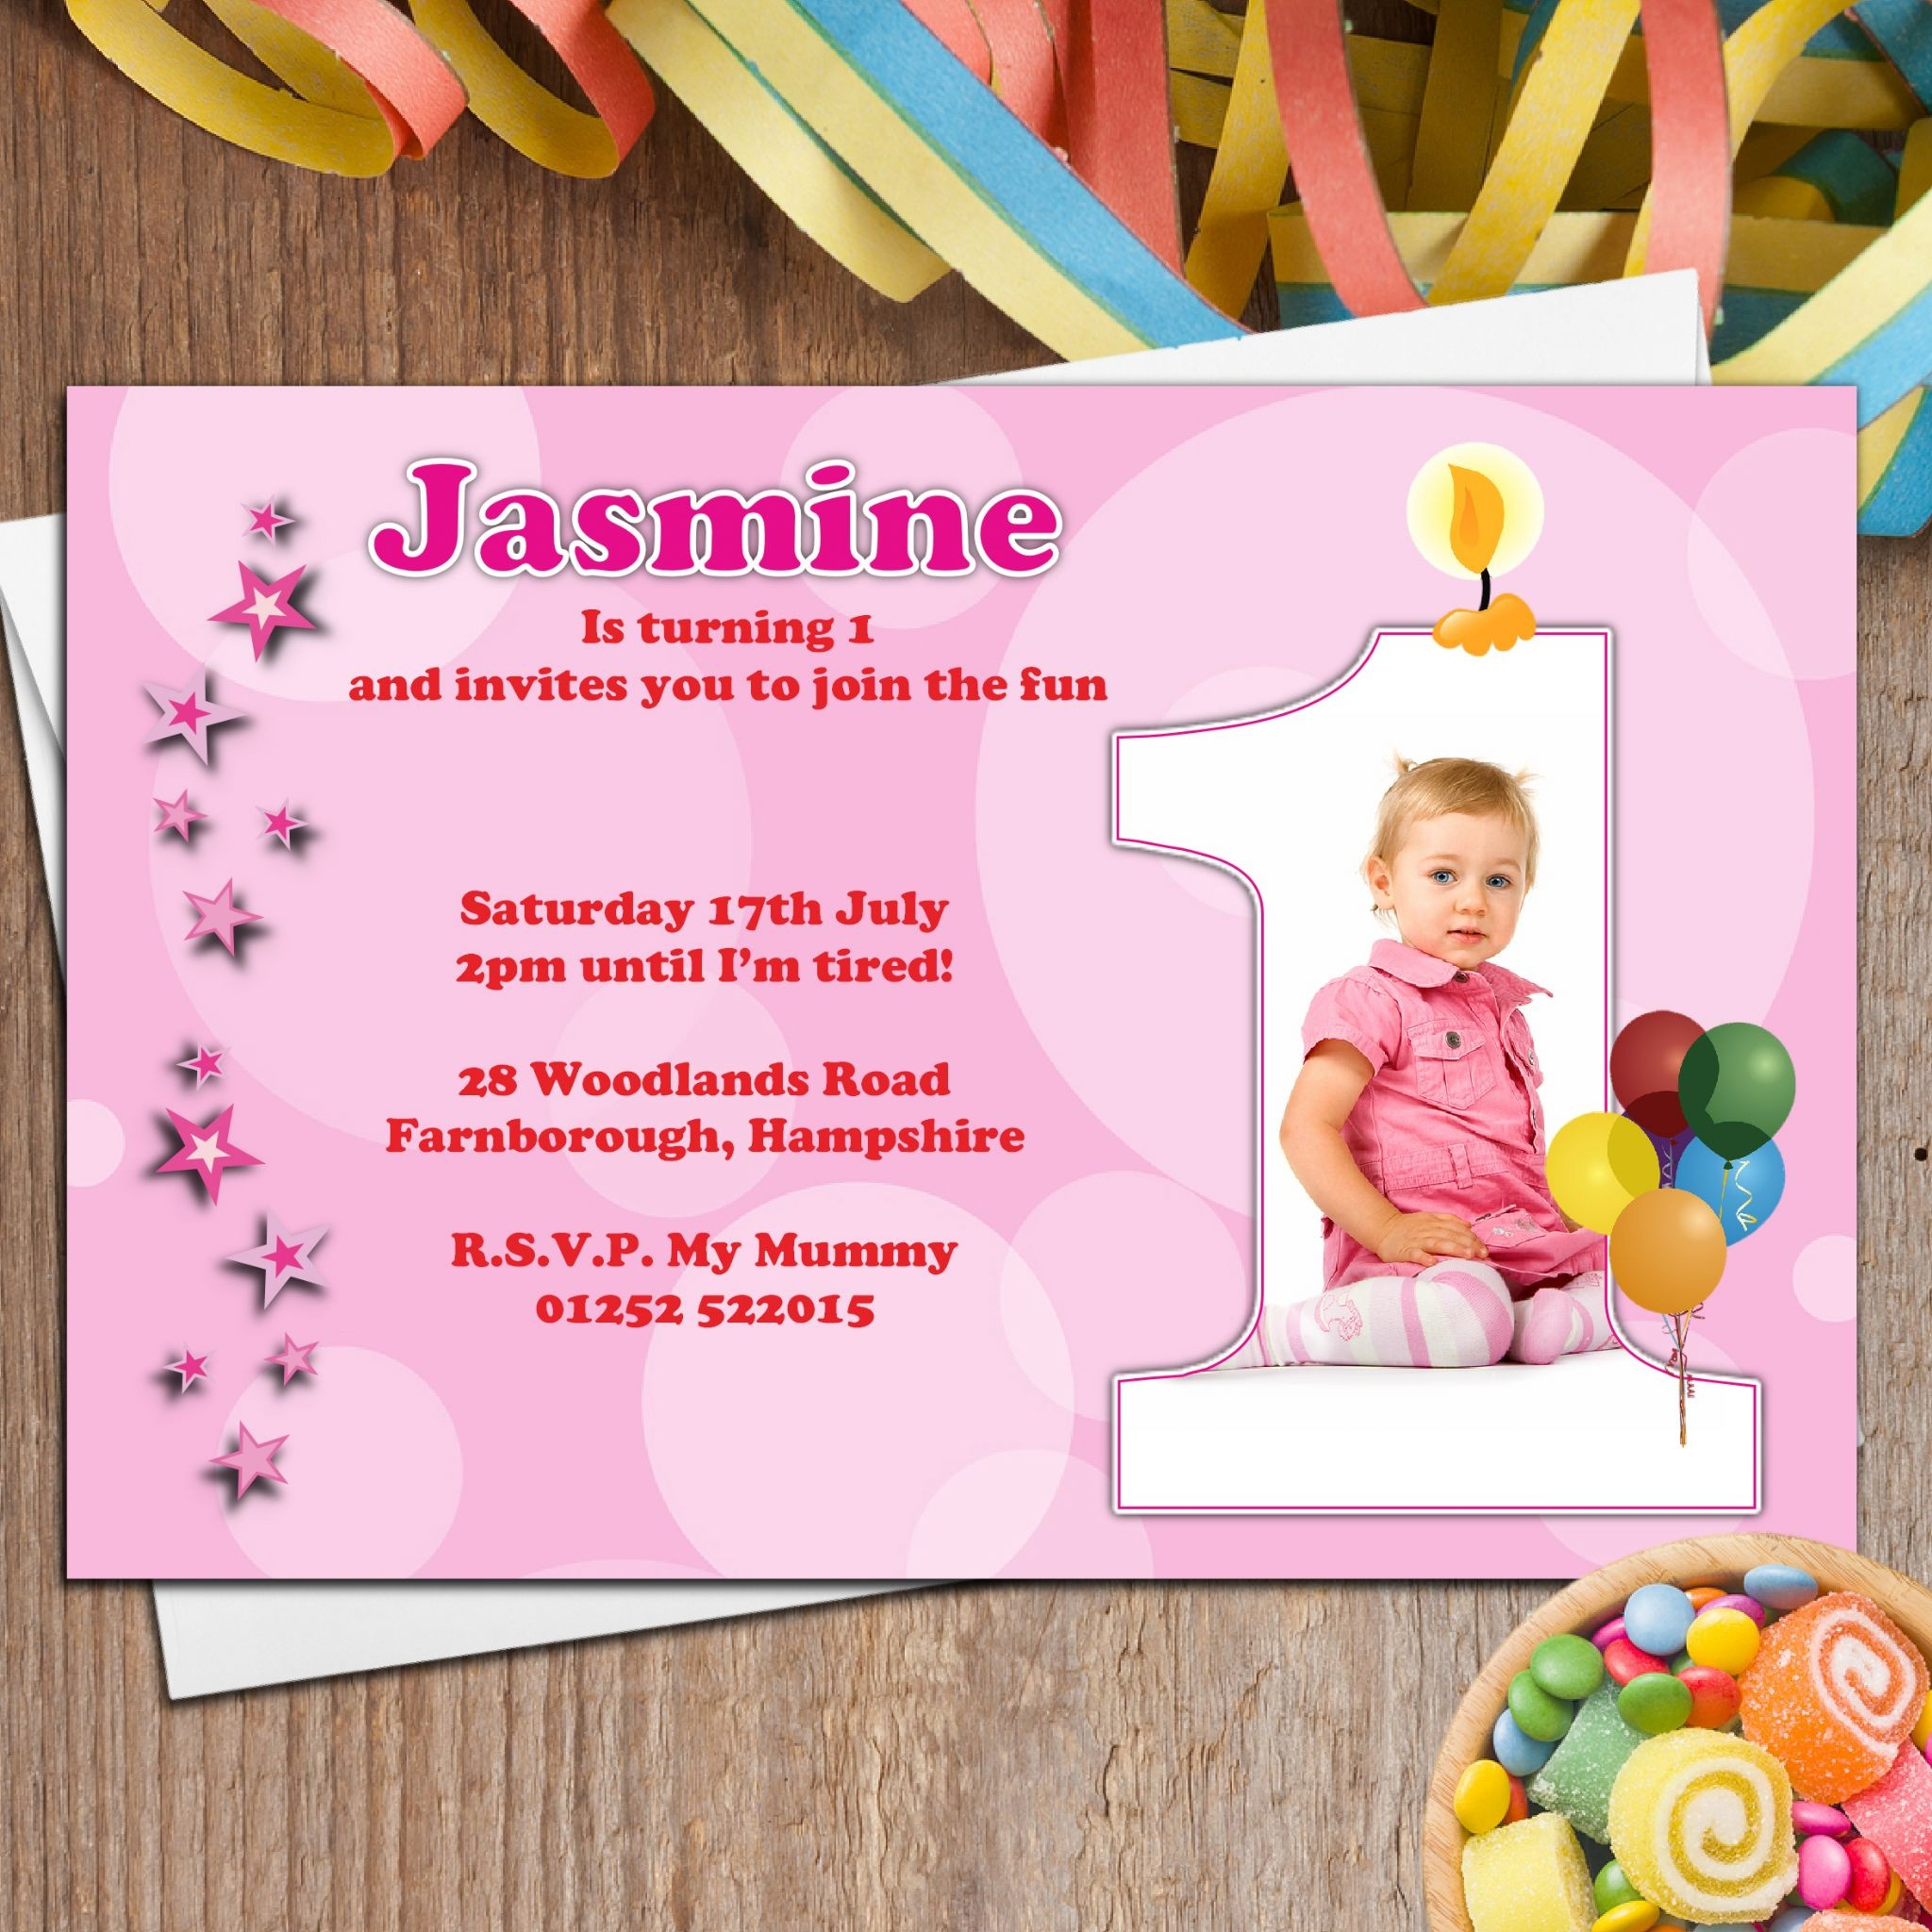 korean birthday invitation card ; invitation-for-birthday-by-sms-best-1st-birthday-cards-for-baby-girl-beautiful-korean-dol-of-invitation-for-birthday-by-sms